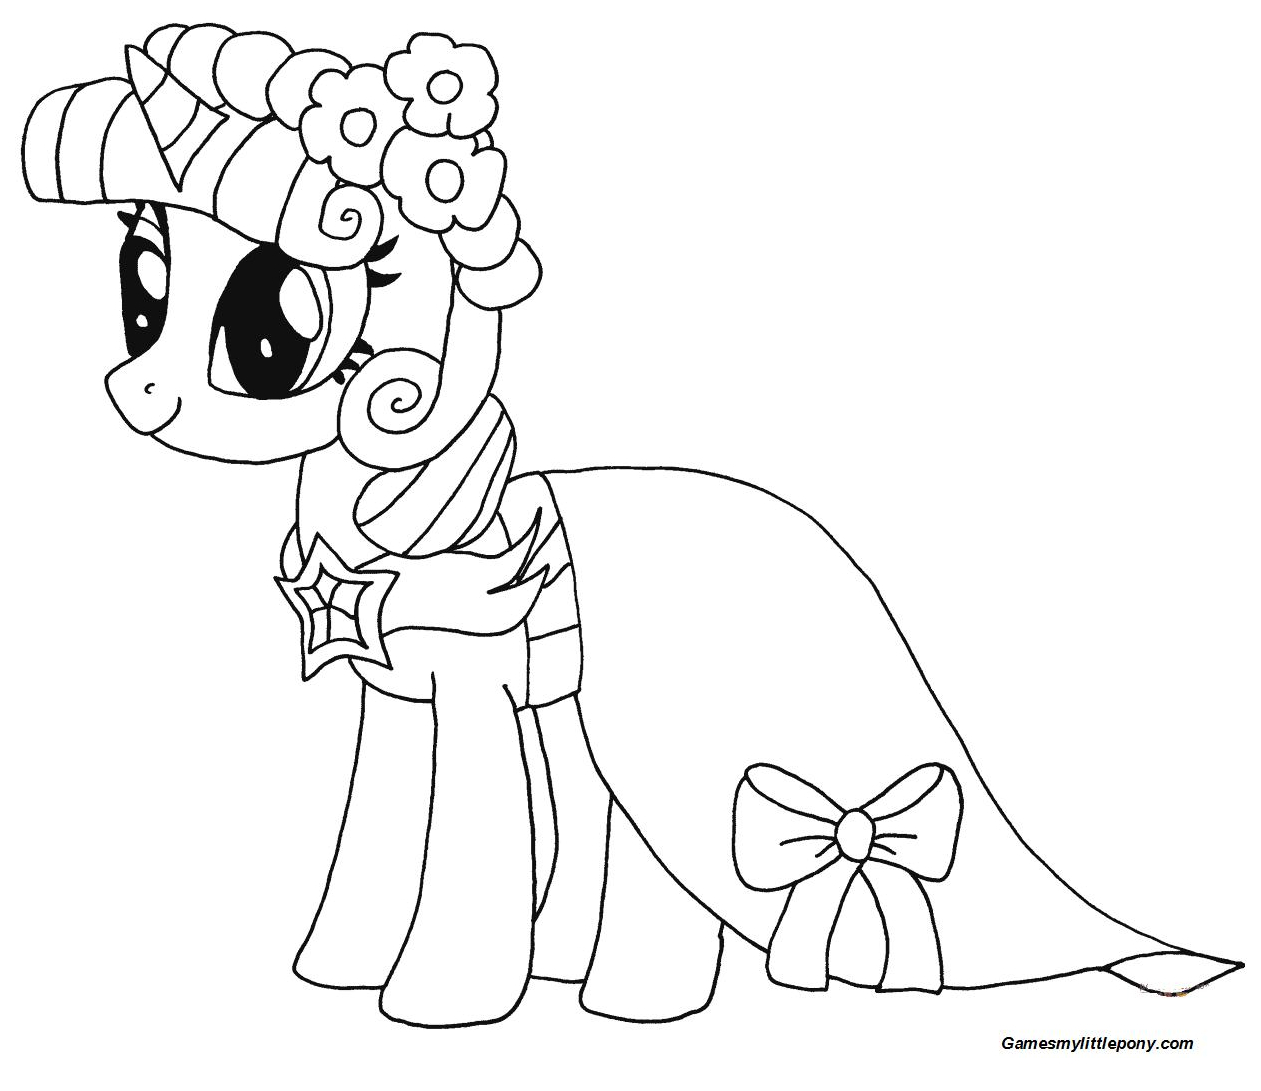 Princess Twilight Sparkle from My Little Pony Coloring Page